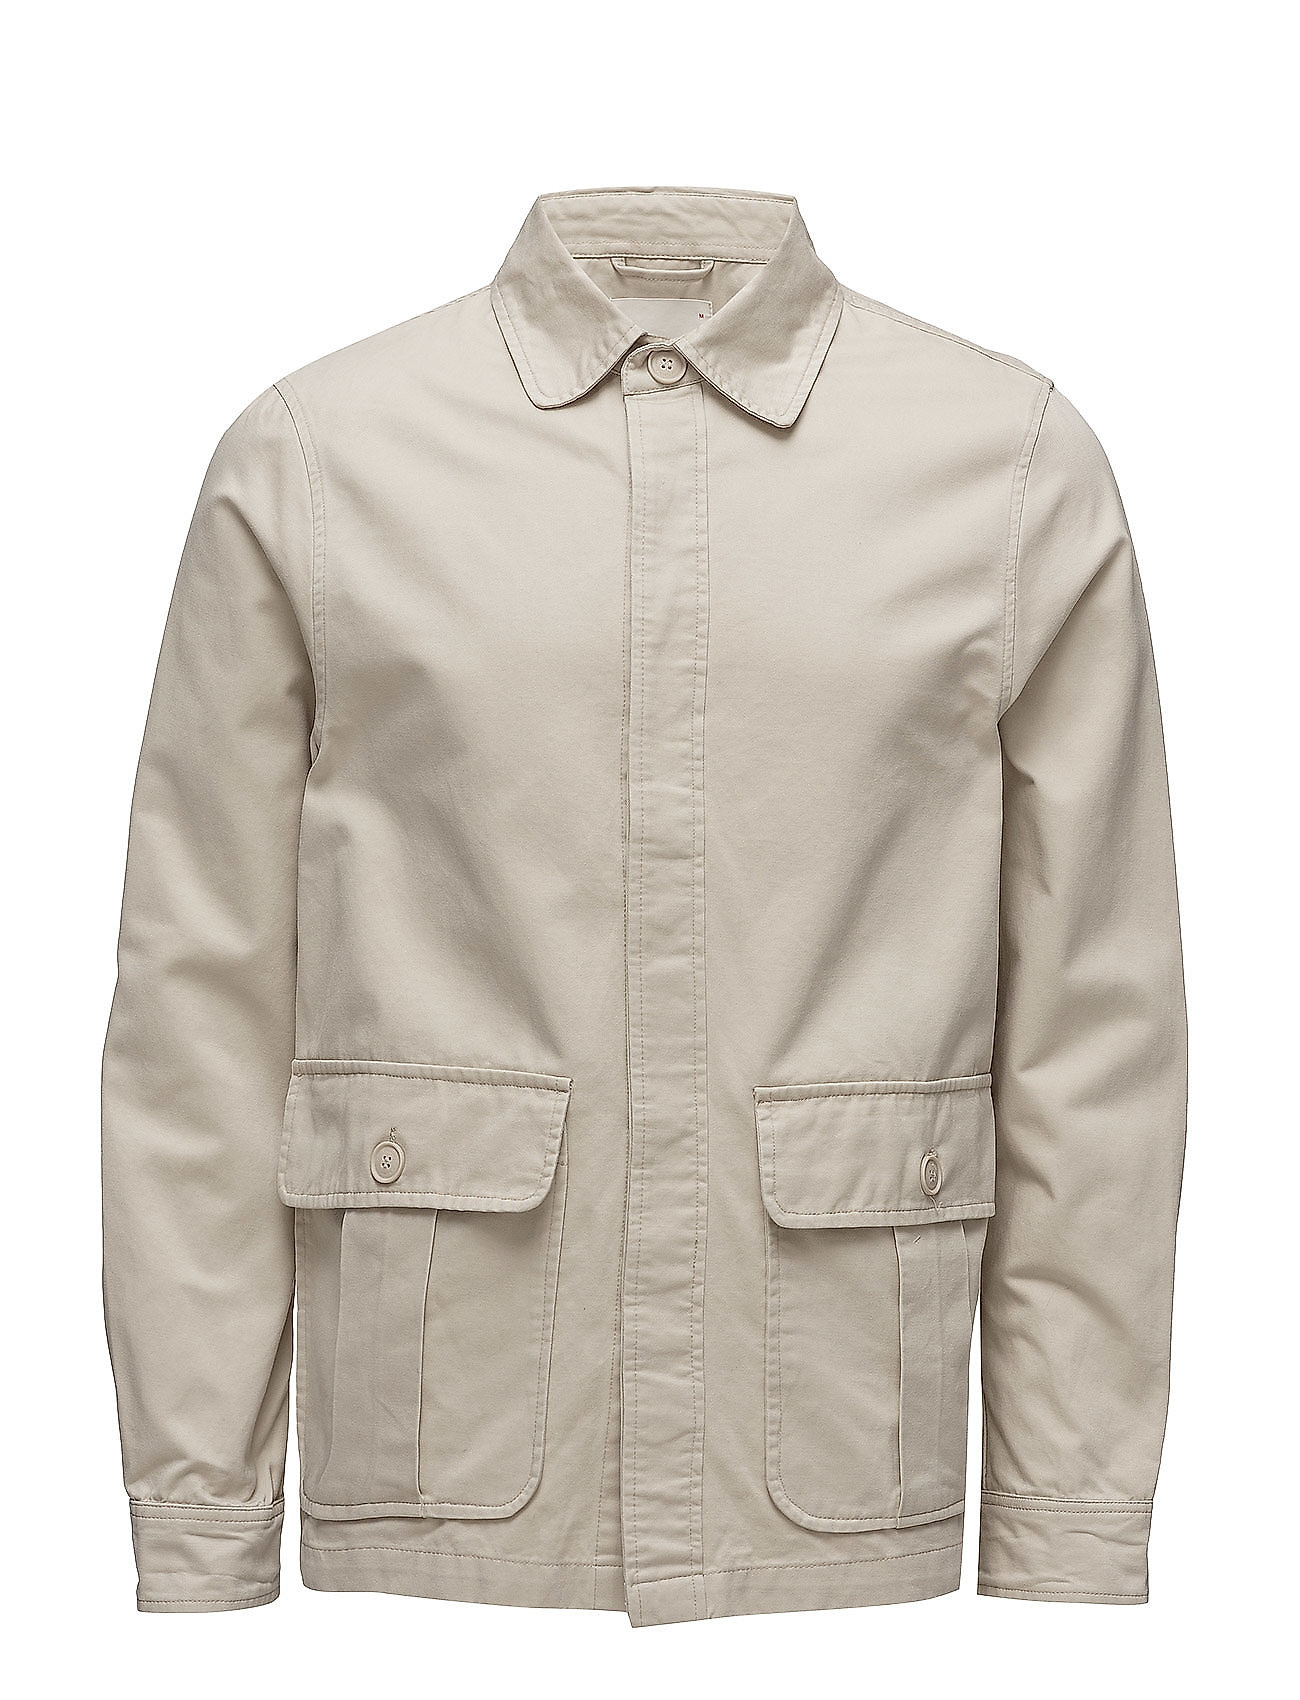 Knowledge Cotton Apparel Twill short jacket - LIGHT FEATHER GRAY